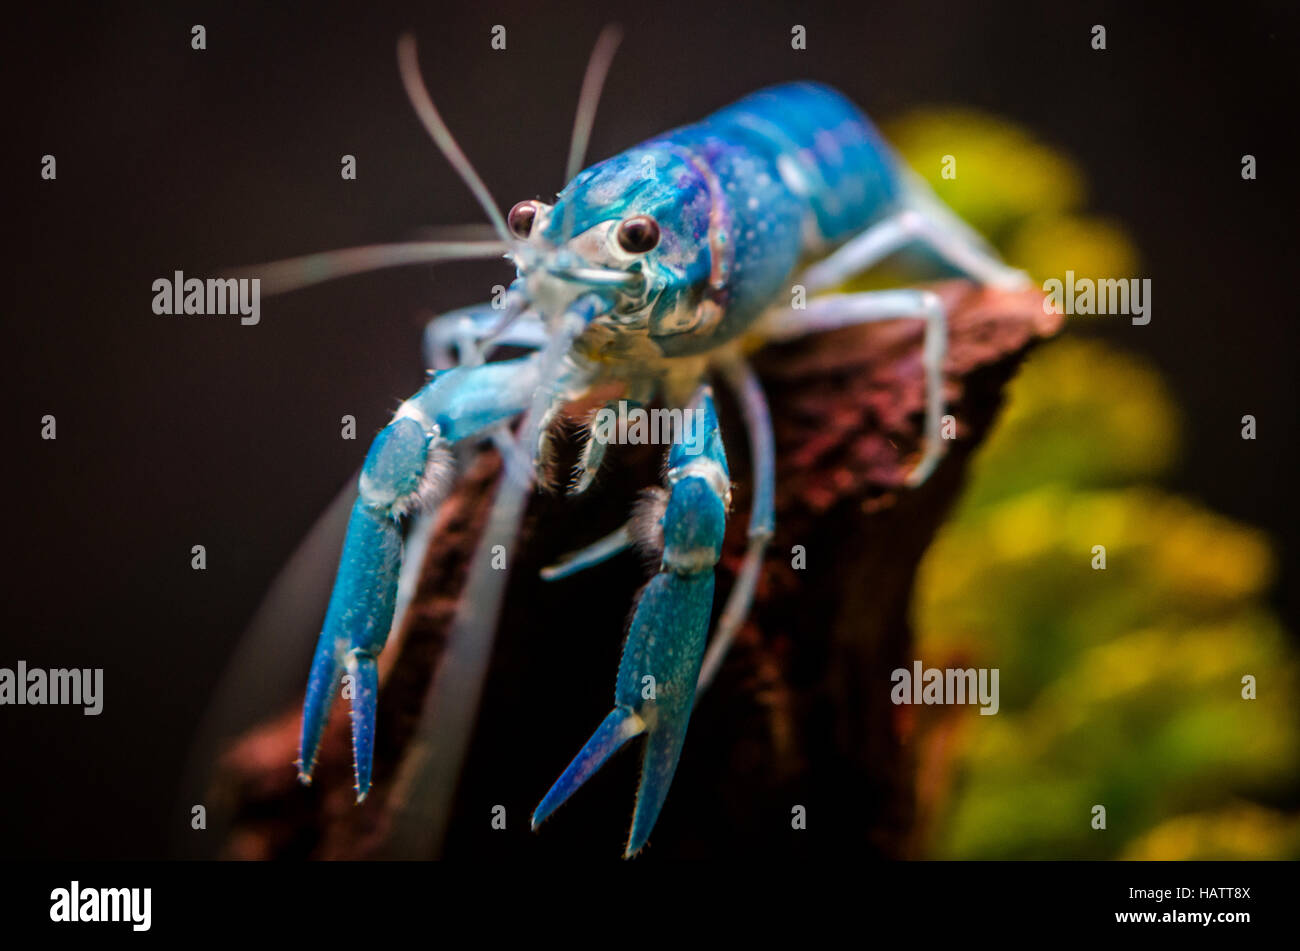 Blue Crayfish in Tropical Freshwater Tank - Stock Image